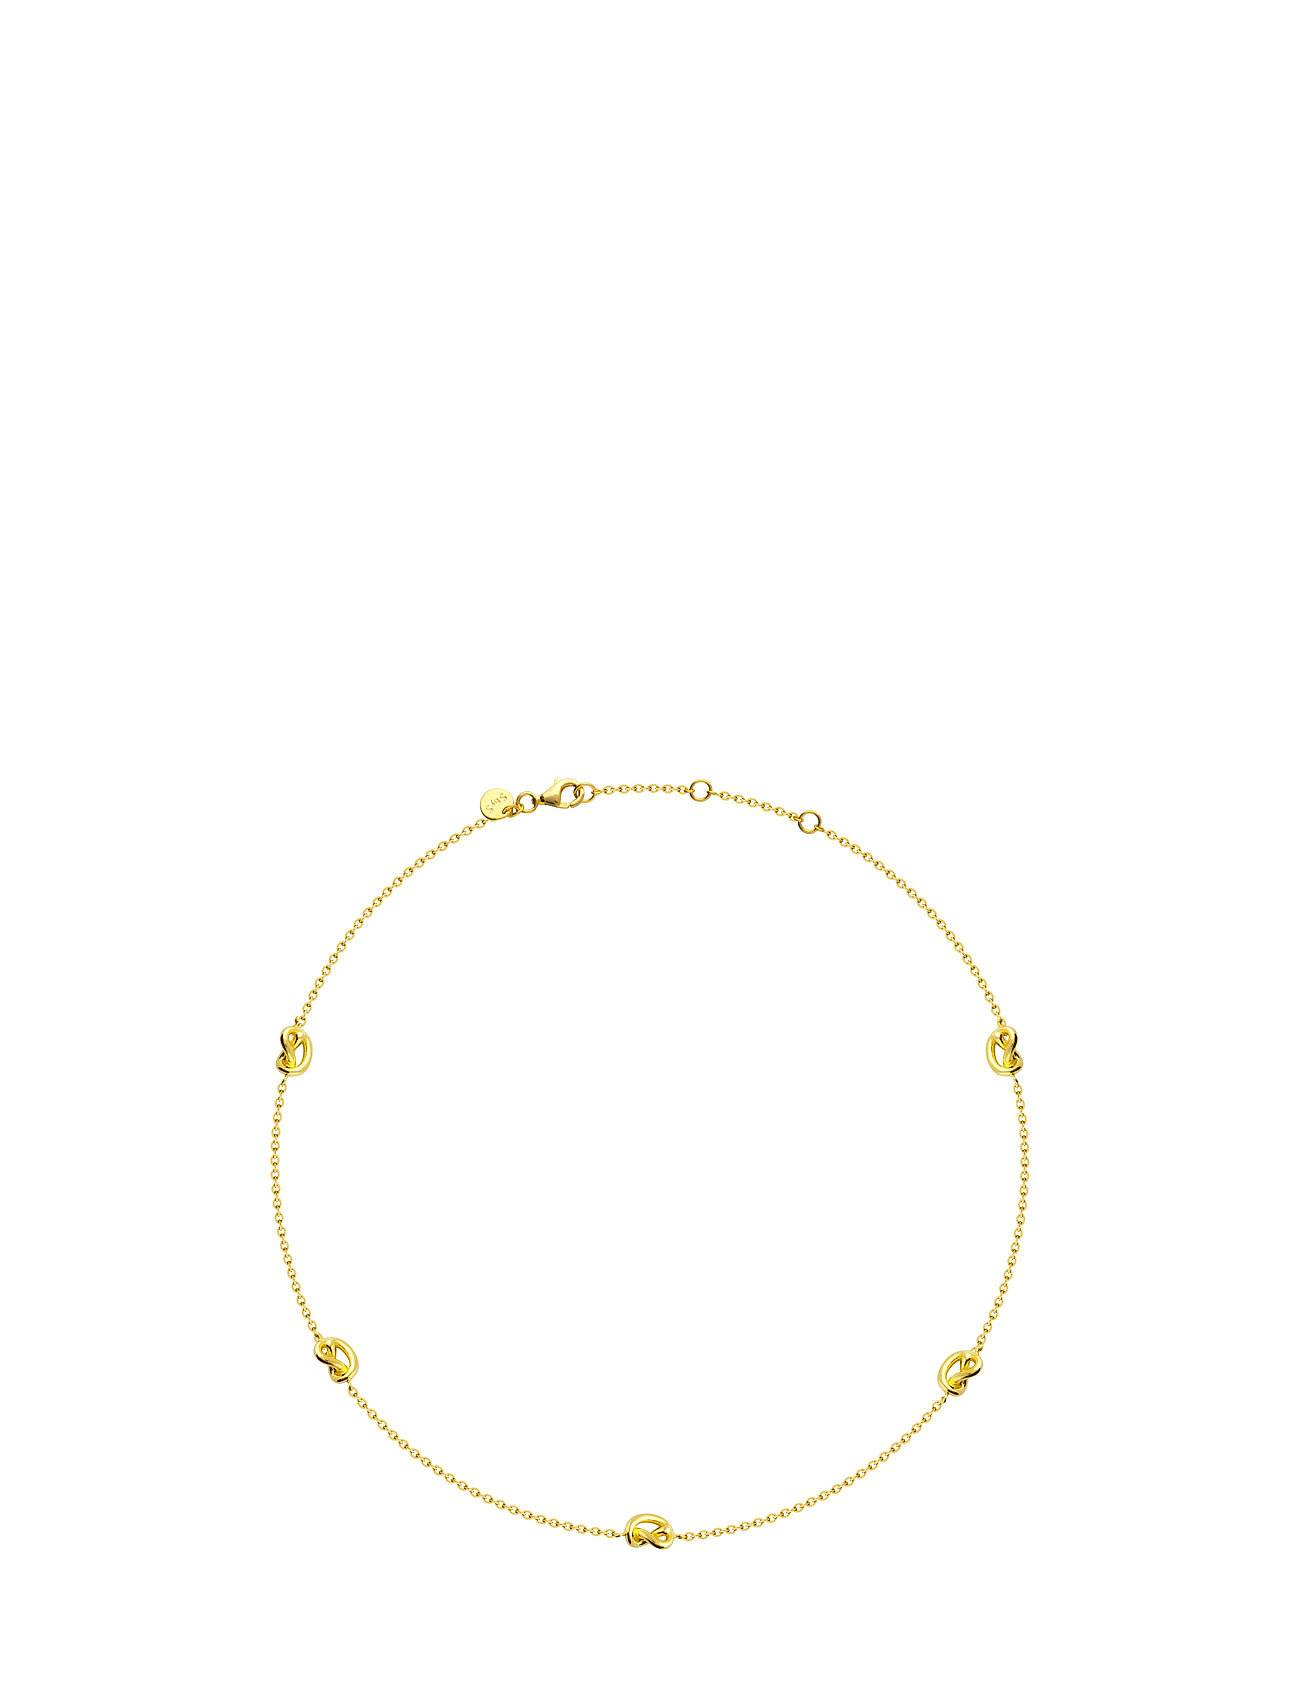 SOPHIE by SOPHIE Symbol Necklace S